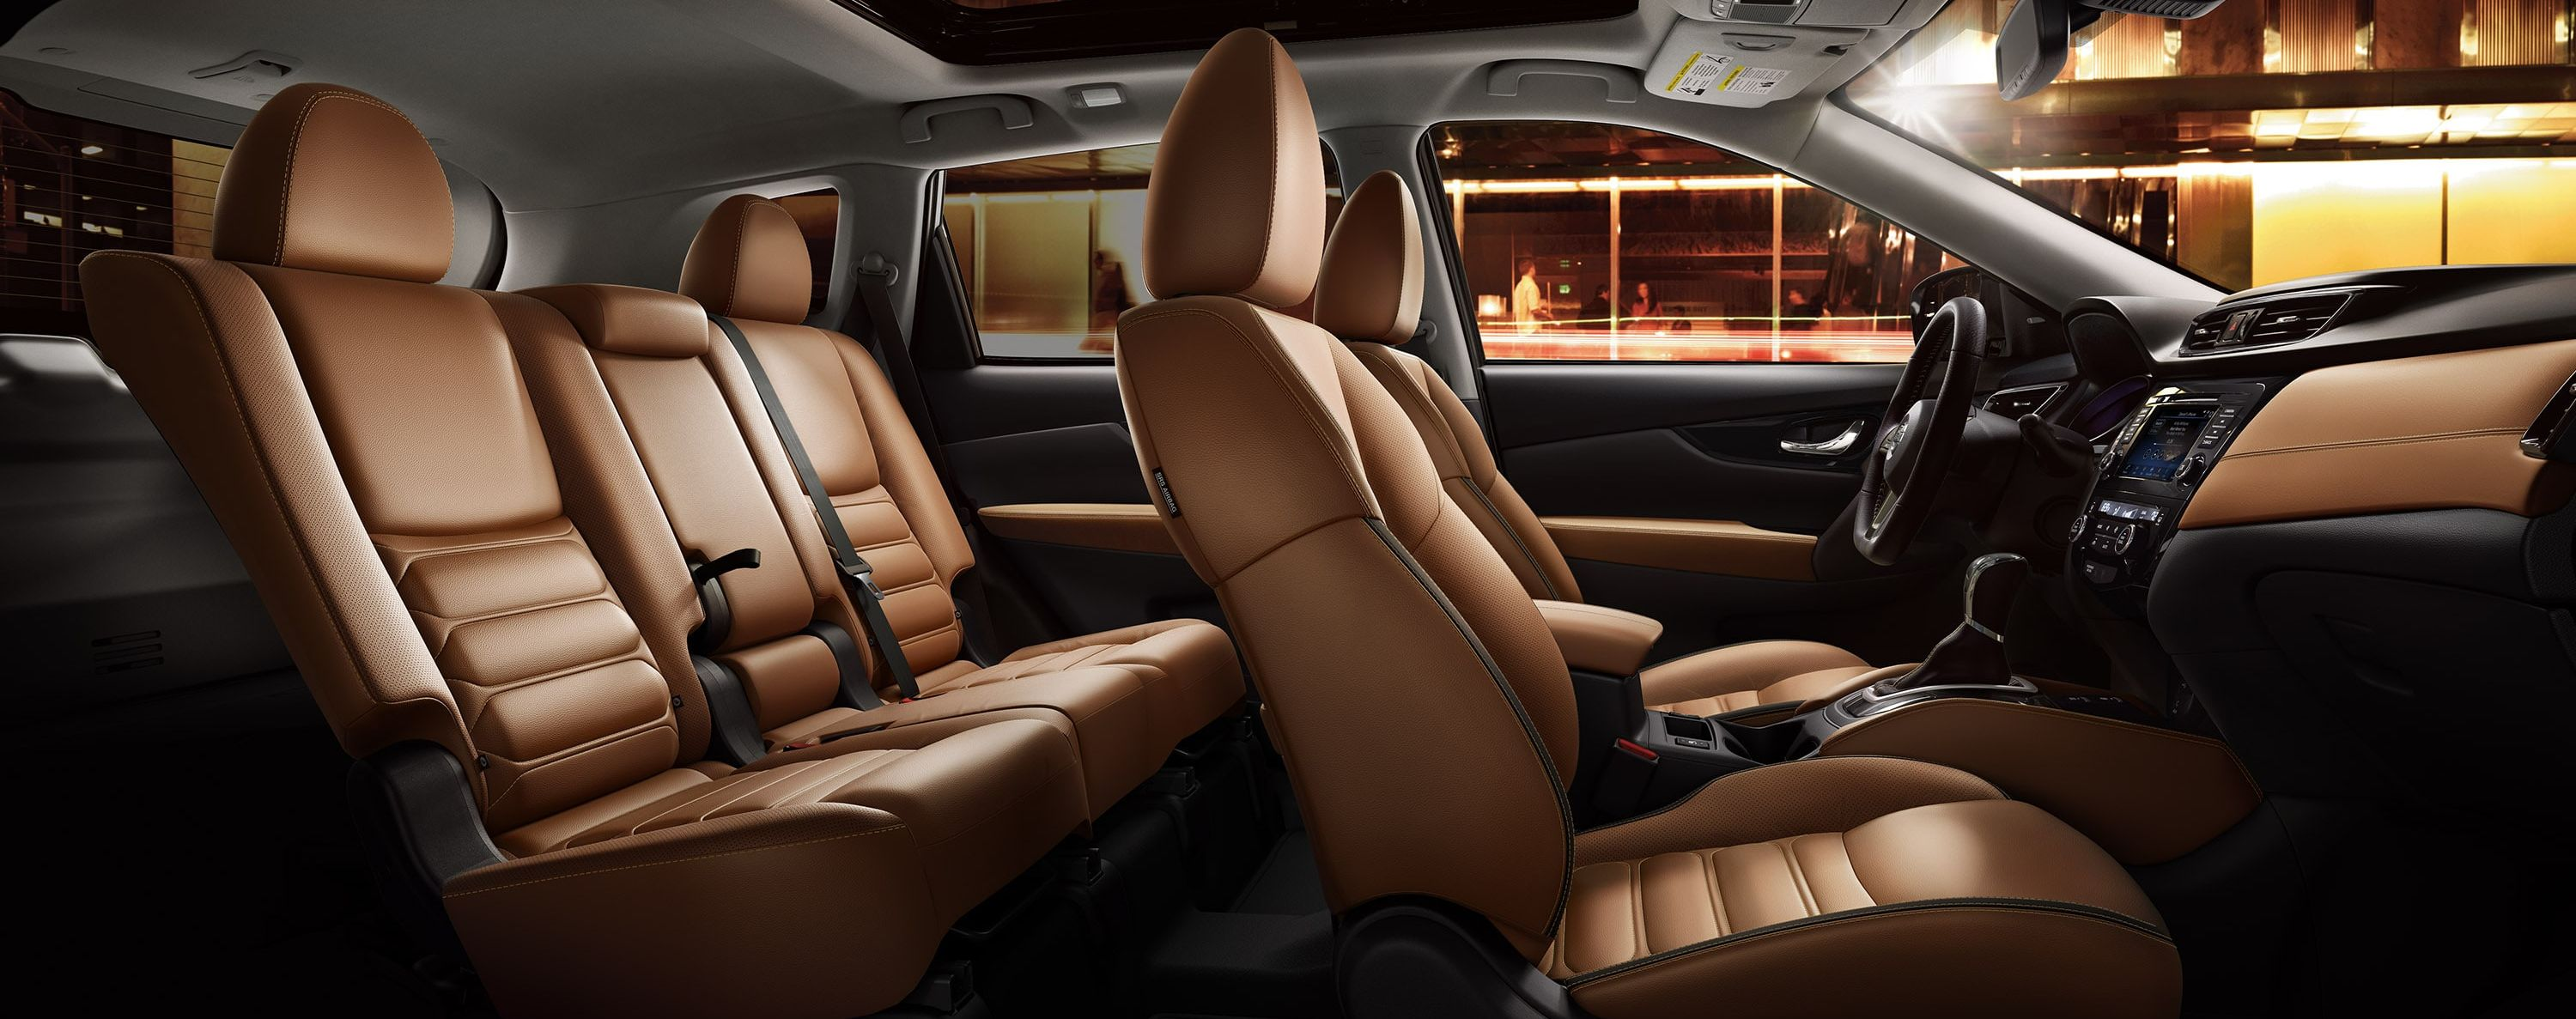 Room to Stretch out in the 2019 Rogue!